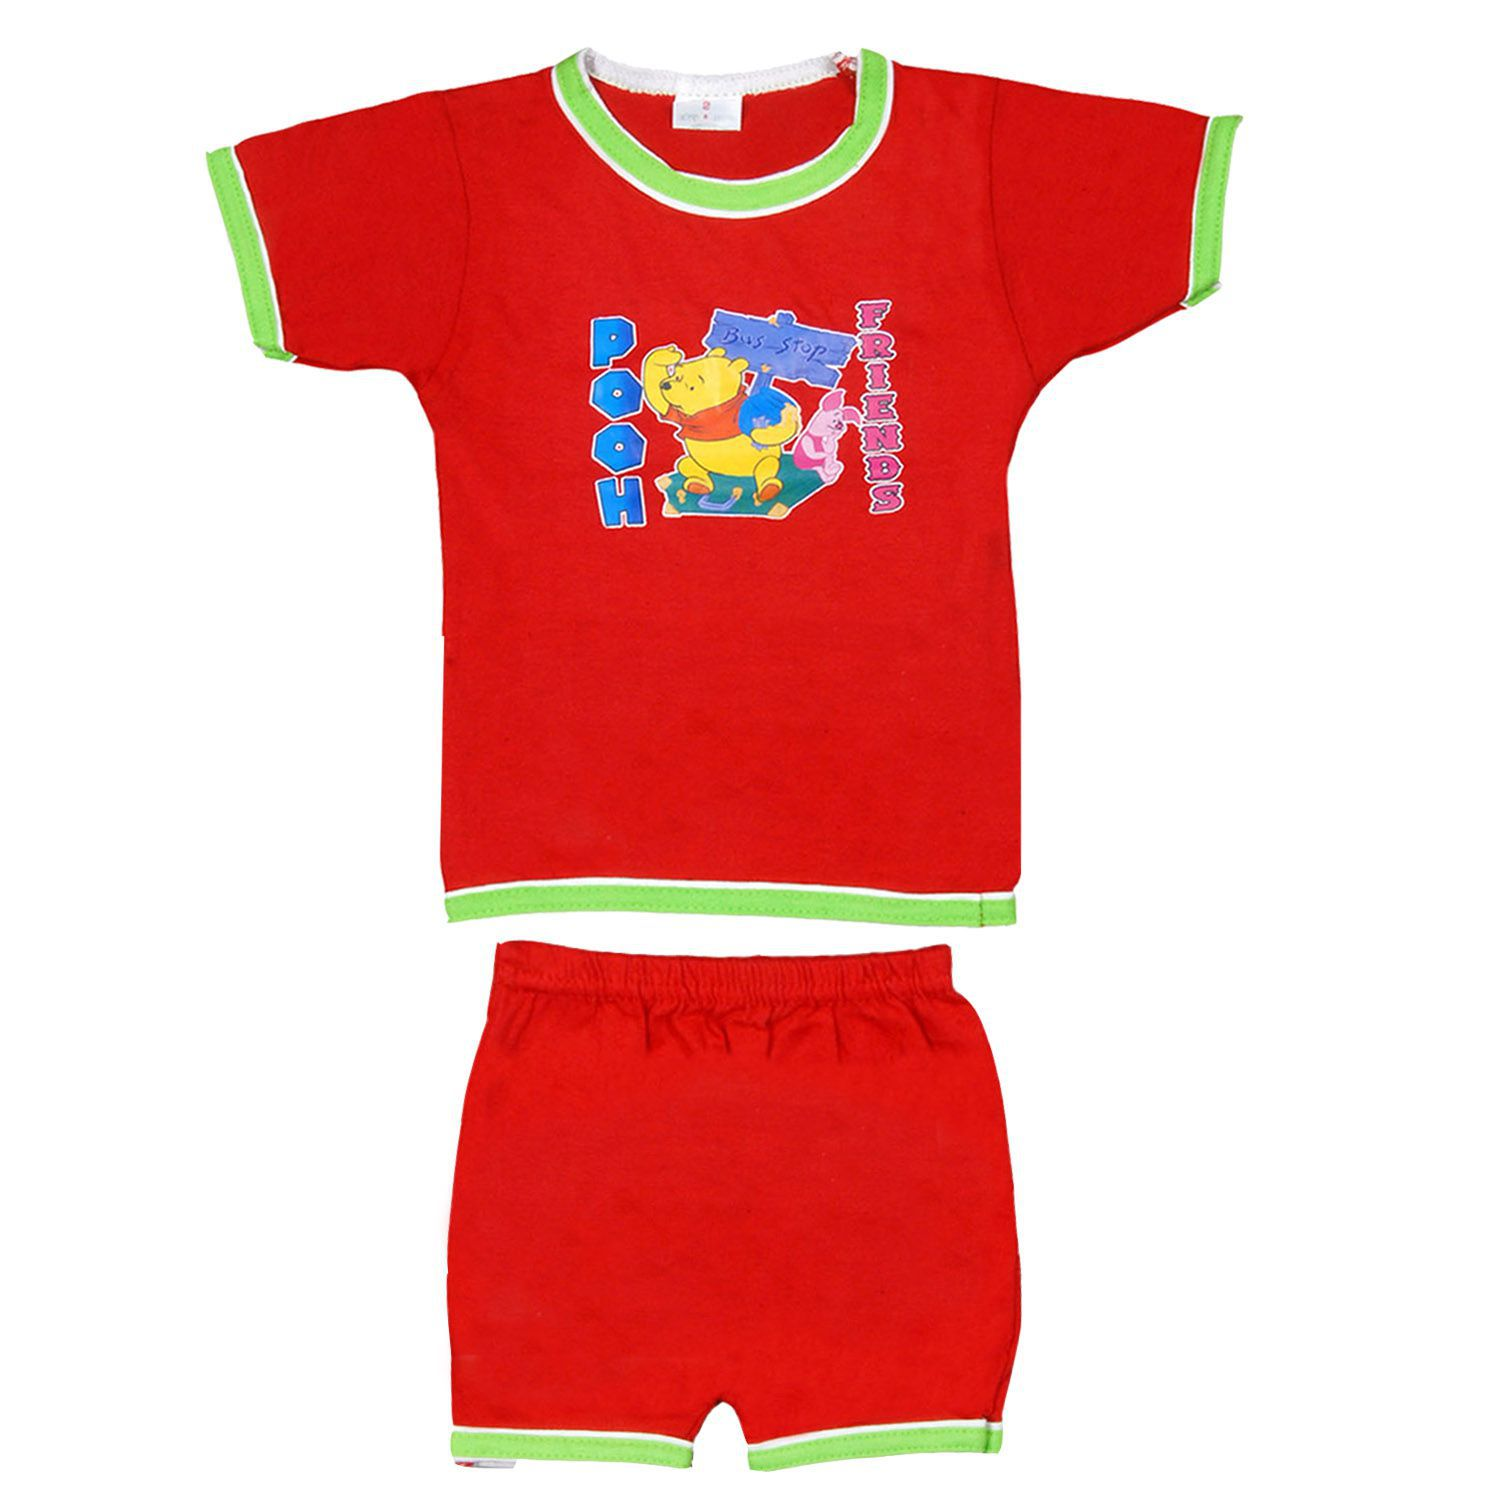 d8314acb1472 Baby Boys Half Sleeves Folding Type Printed 10 Tops Matching 10 ...